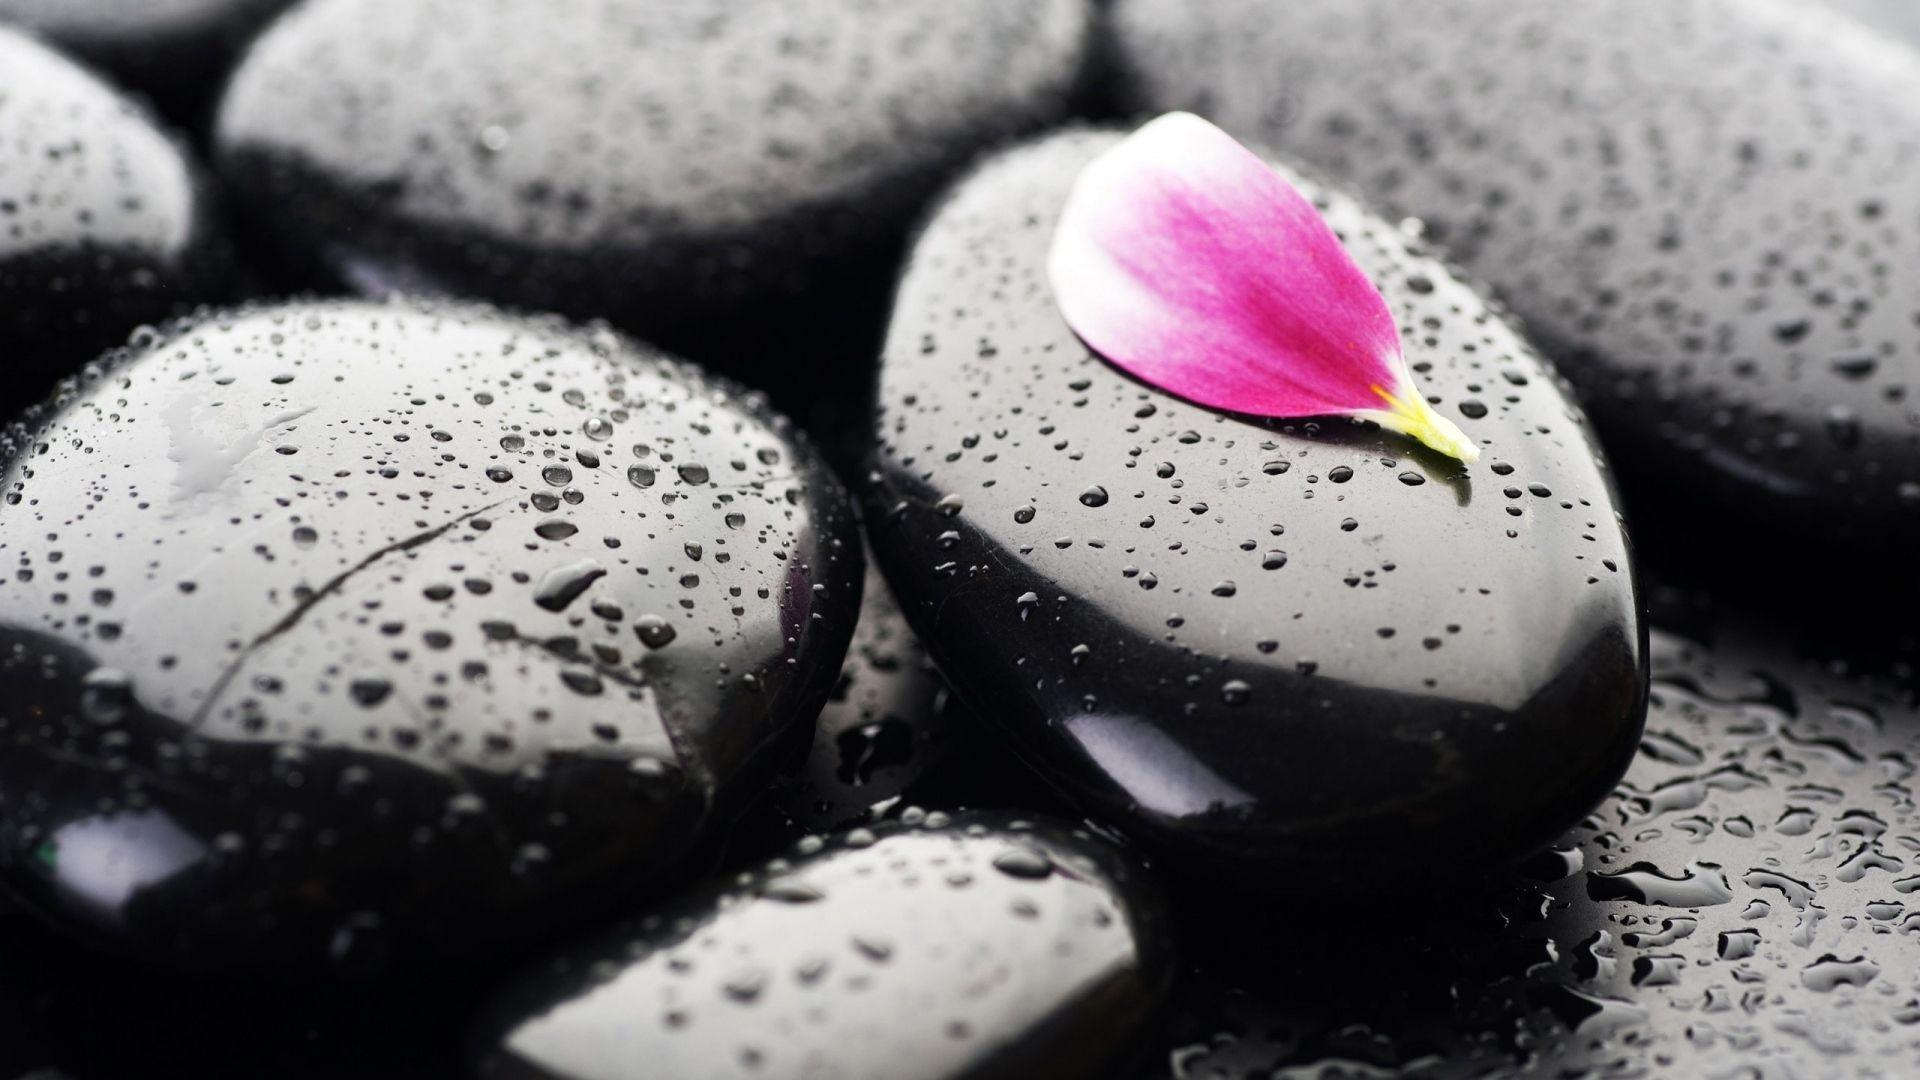 Full HD Wallpaper pebble drop water petal, Desktop Backgrounds HD 1080p